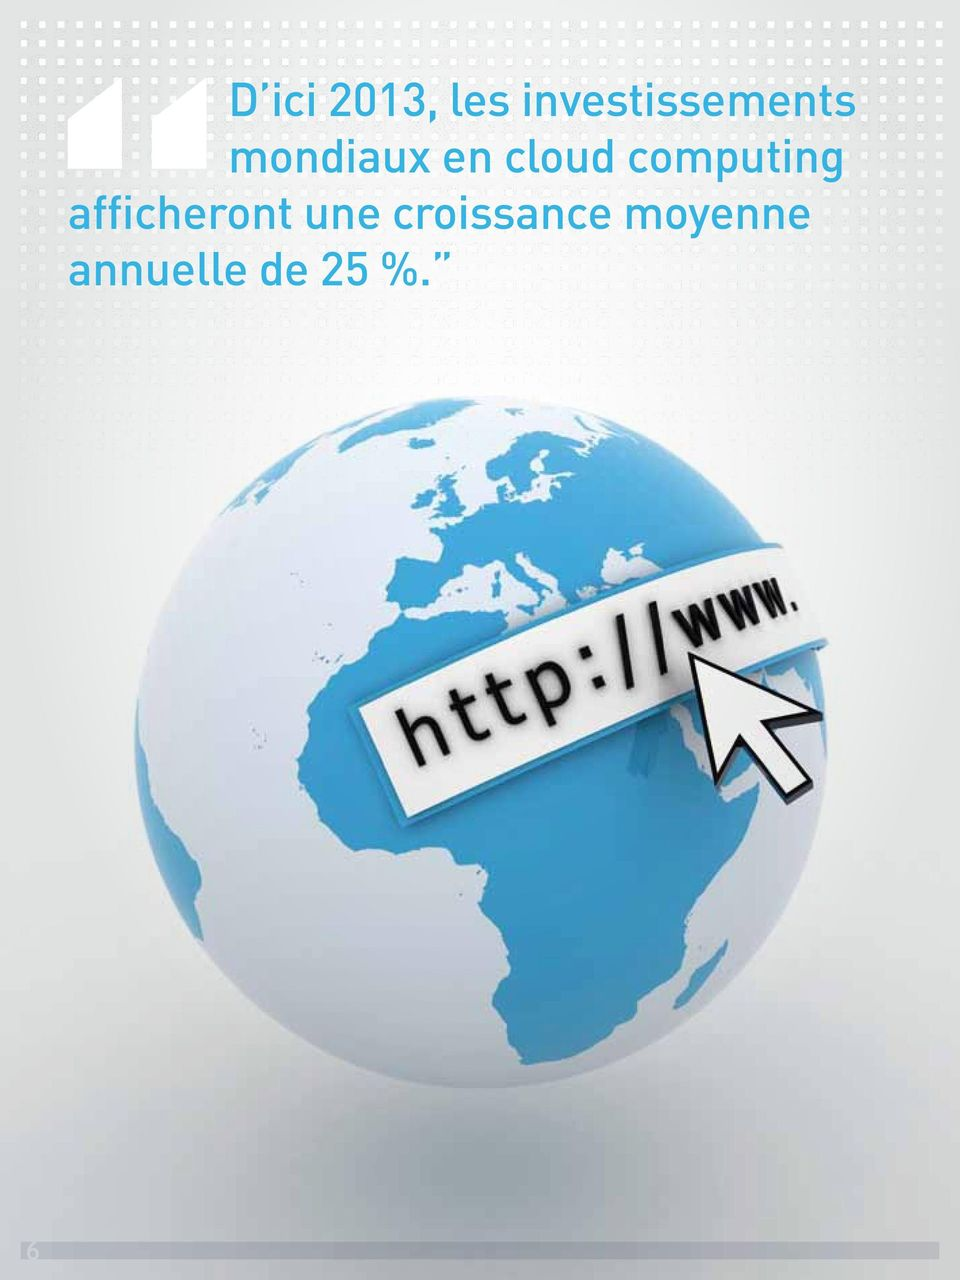 cloud computing afficheront